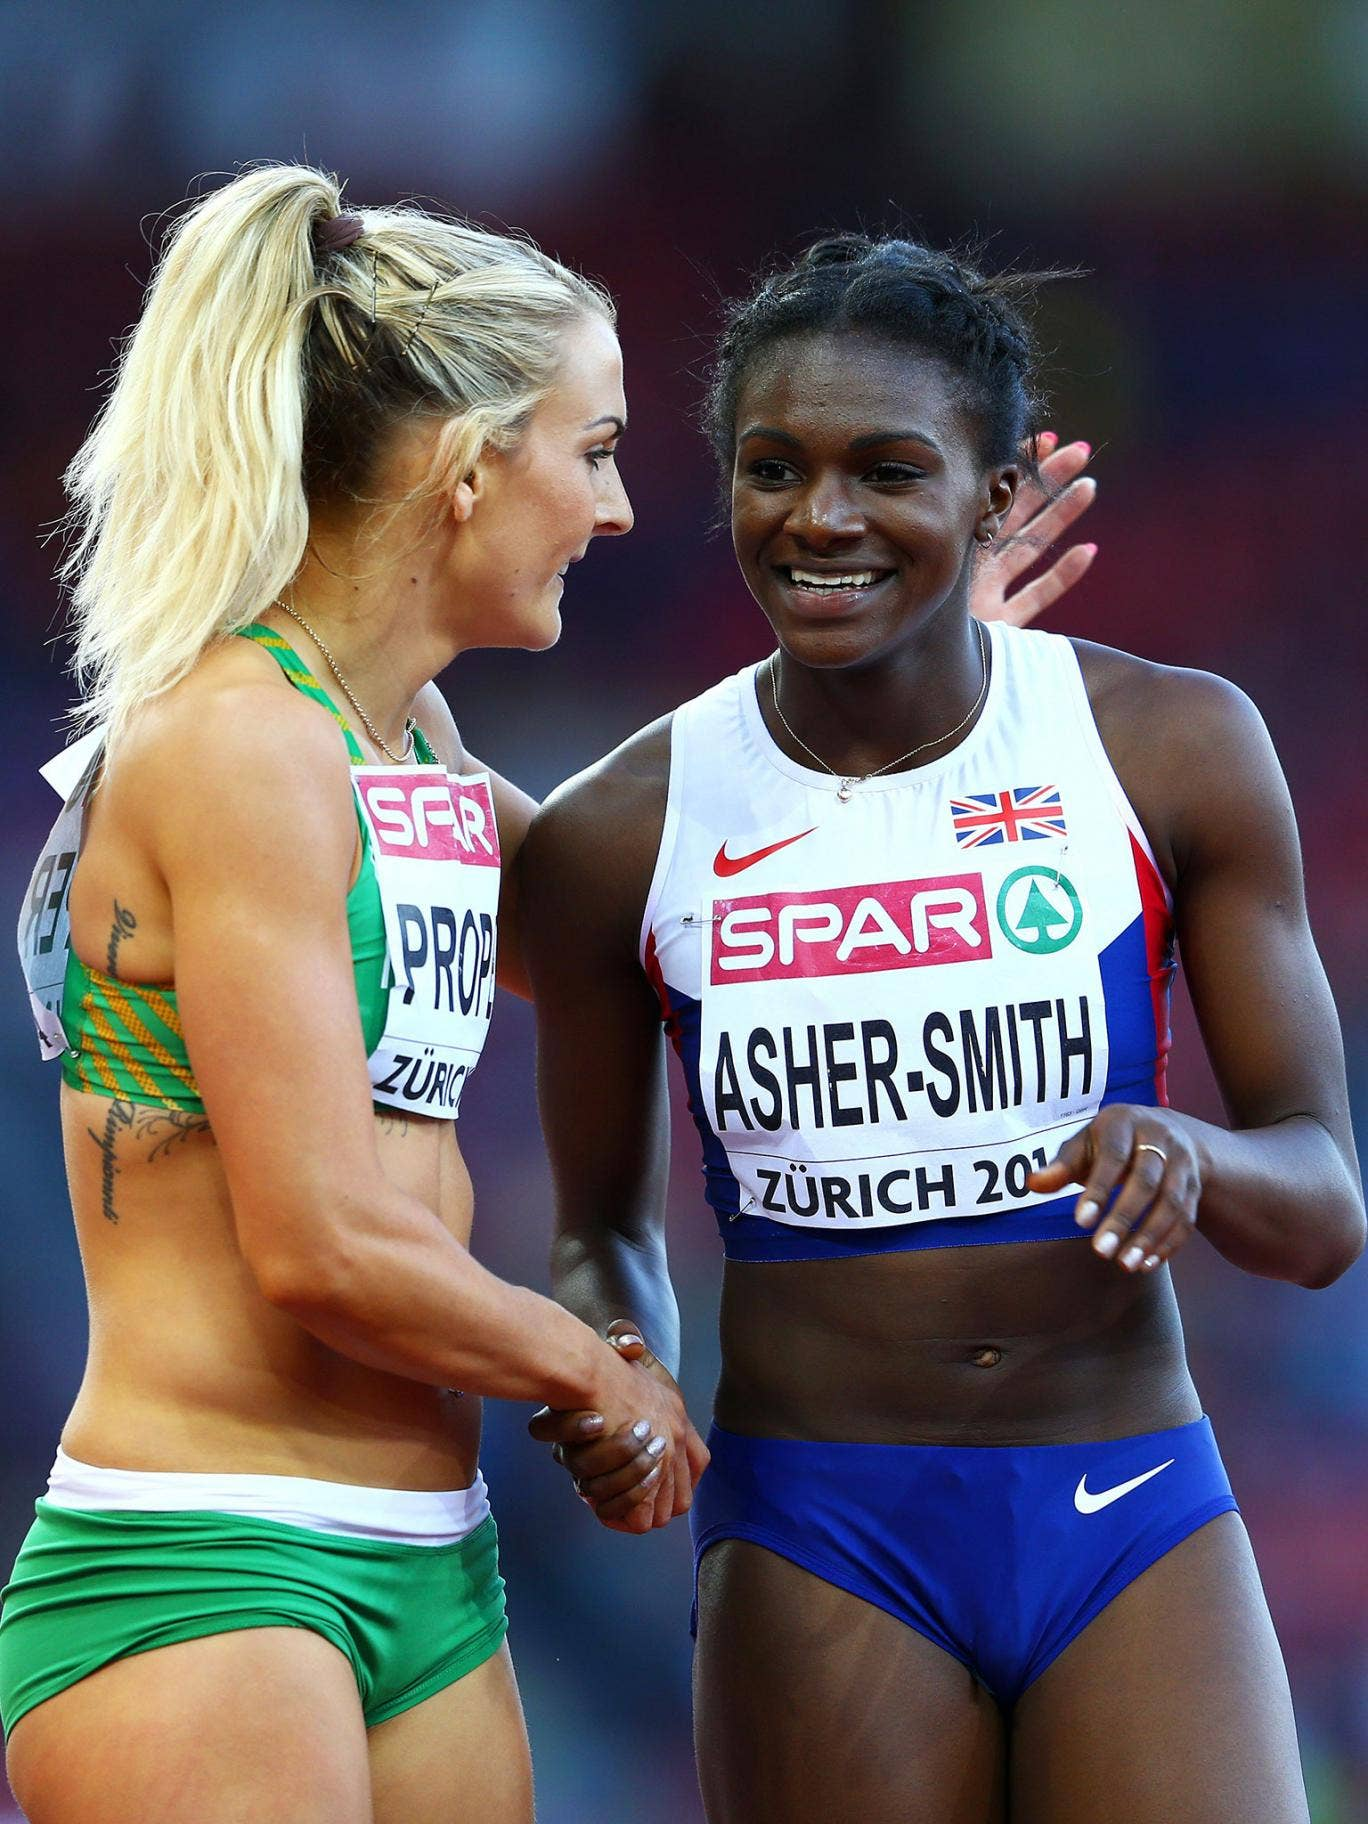 Dina Asher-Smith of Great Britain and Northern Ireland and Kelly Proper of Ireland speak after the Women's 200 metres semi-final on day three of the 22nd European Athletics Championships